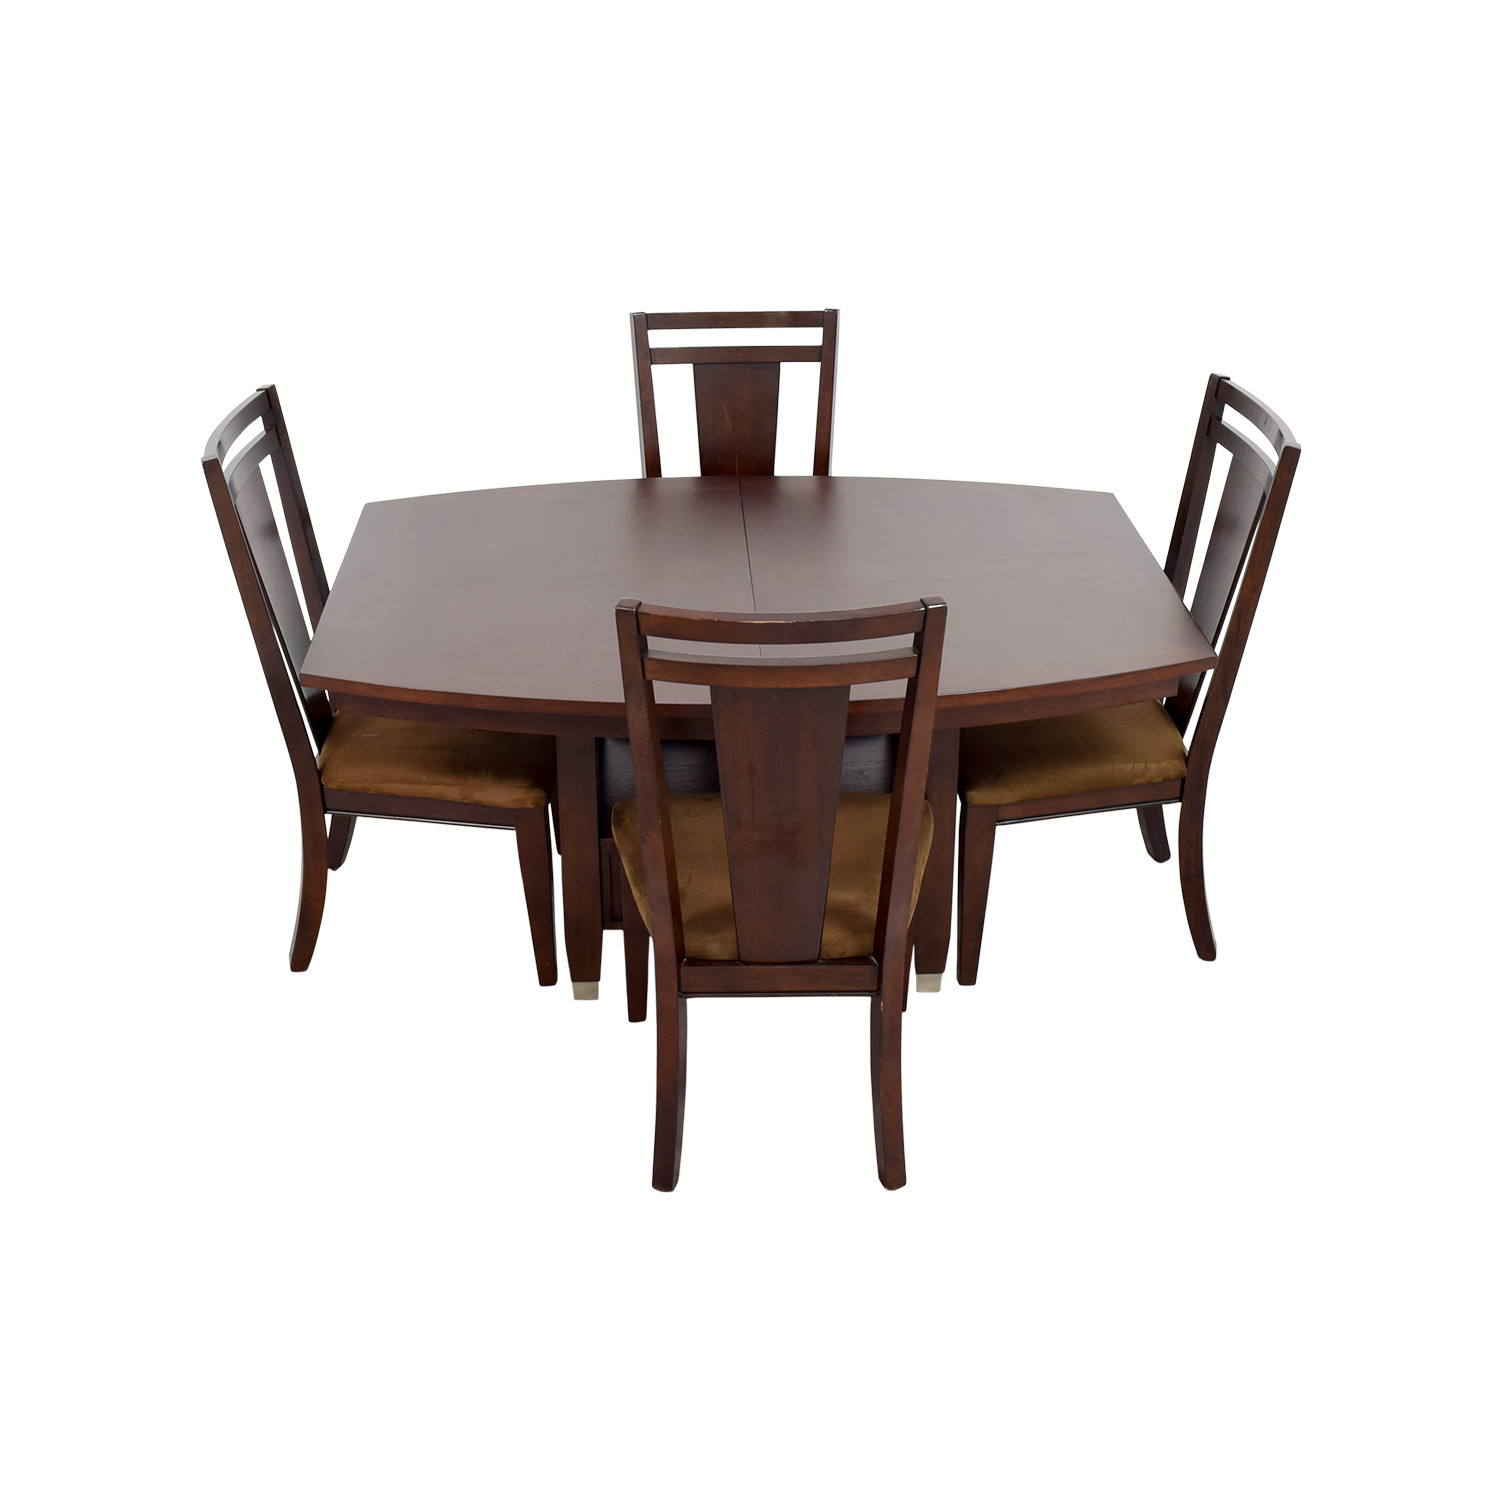 Best ideas about Wood Dining Table . Save or Pin OFF Broyhill Broyhill Wood Dining Table Set Tables Now.